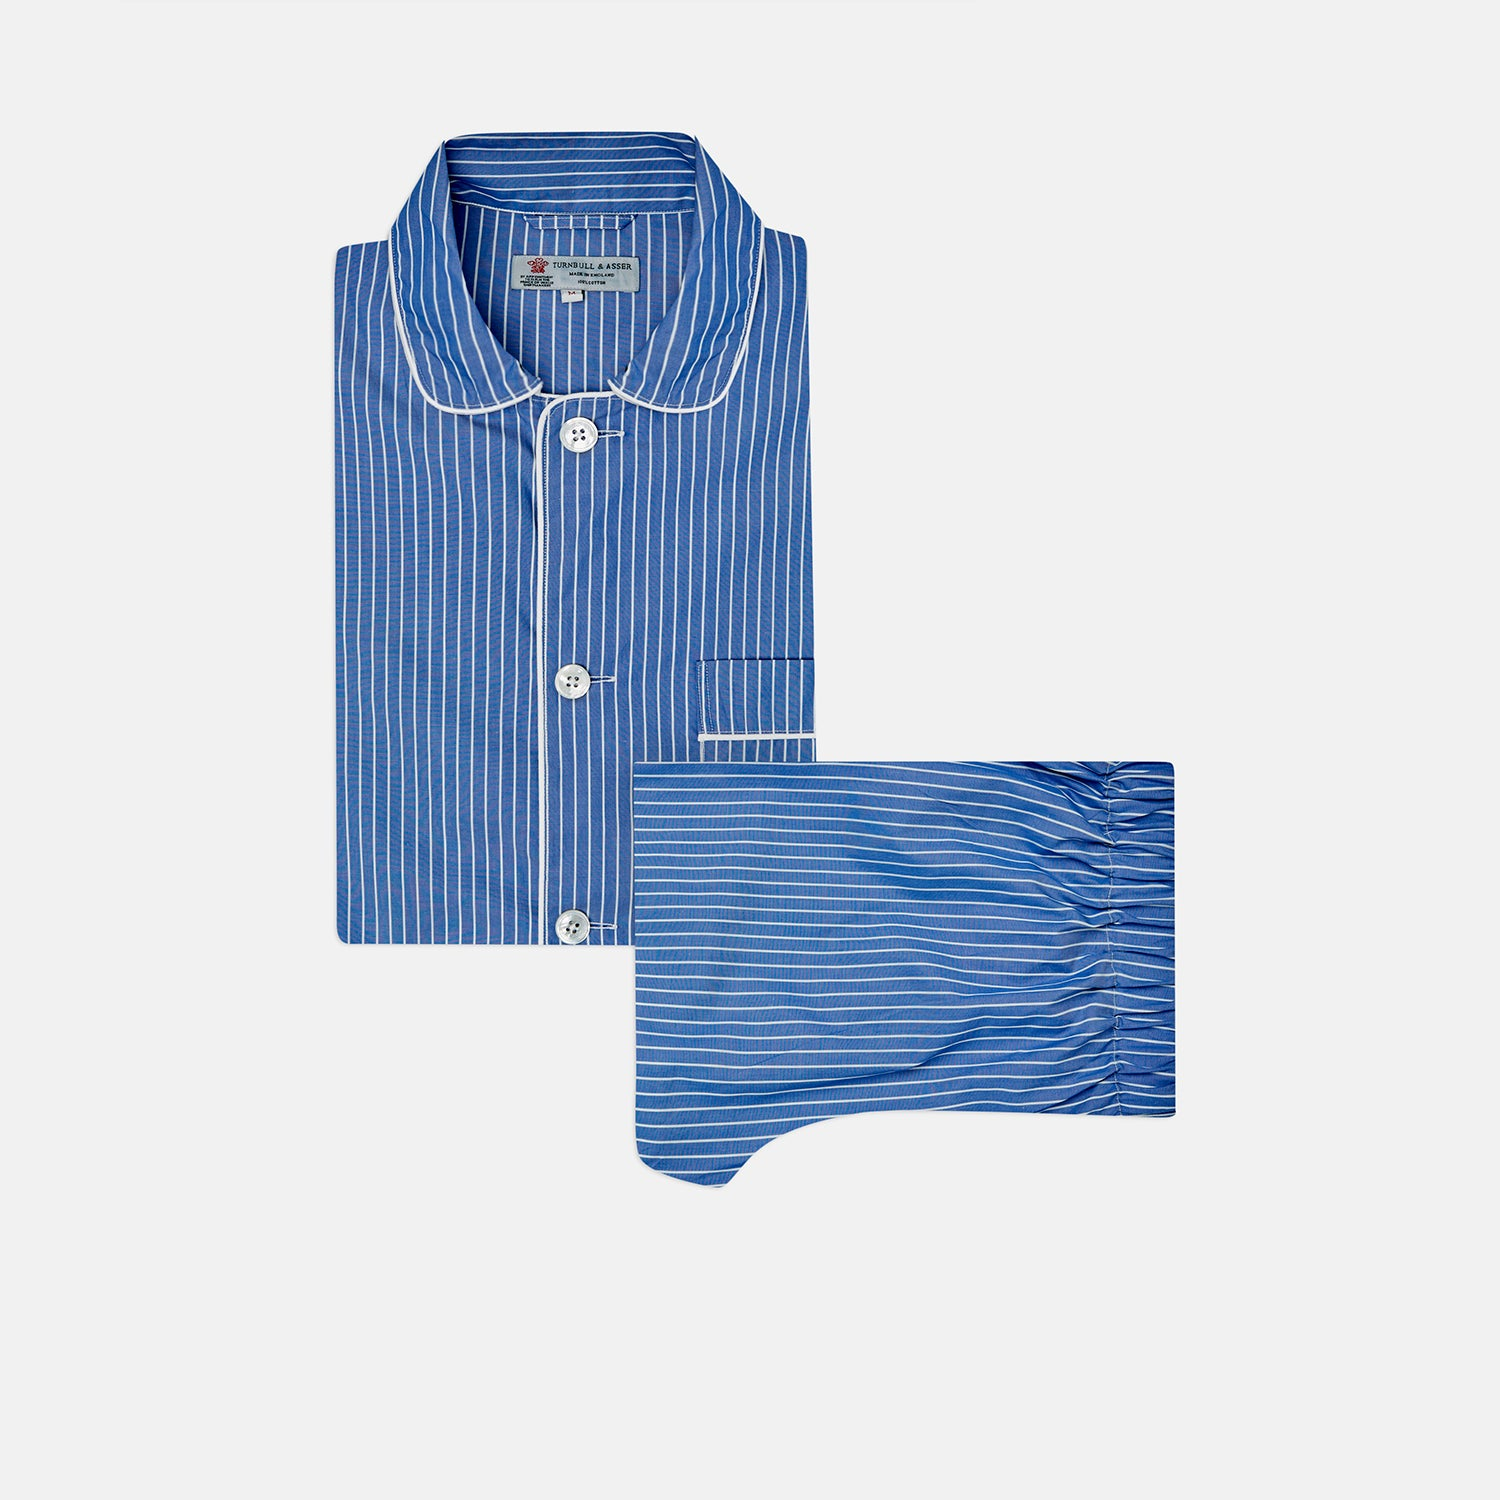 Blue Stripe Cotton Modern Pyjama Set - S from Turnbull & Asser